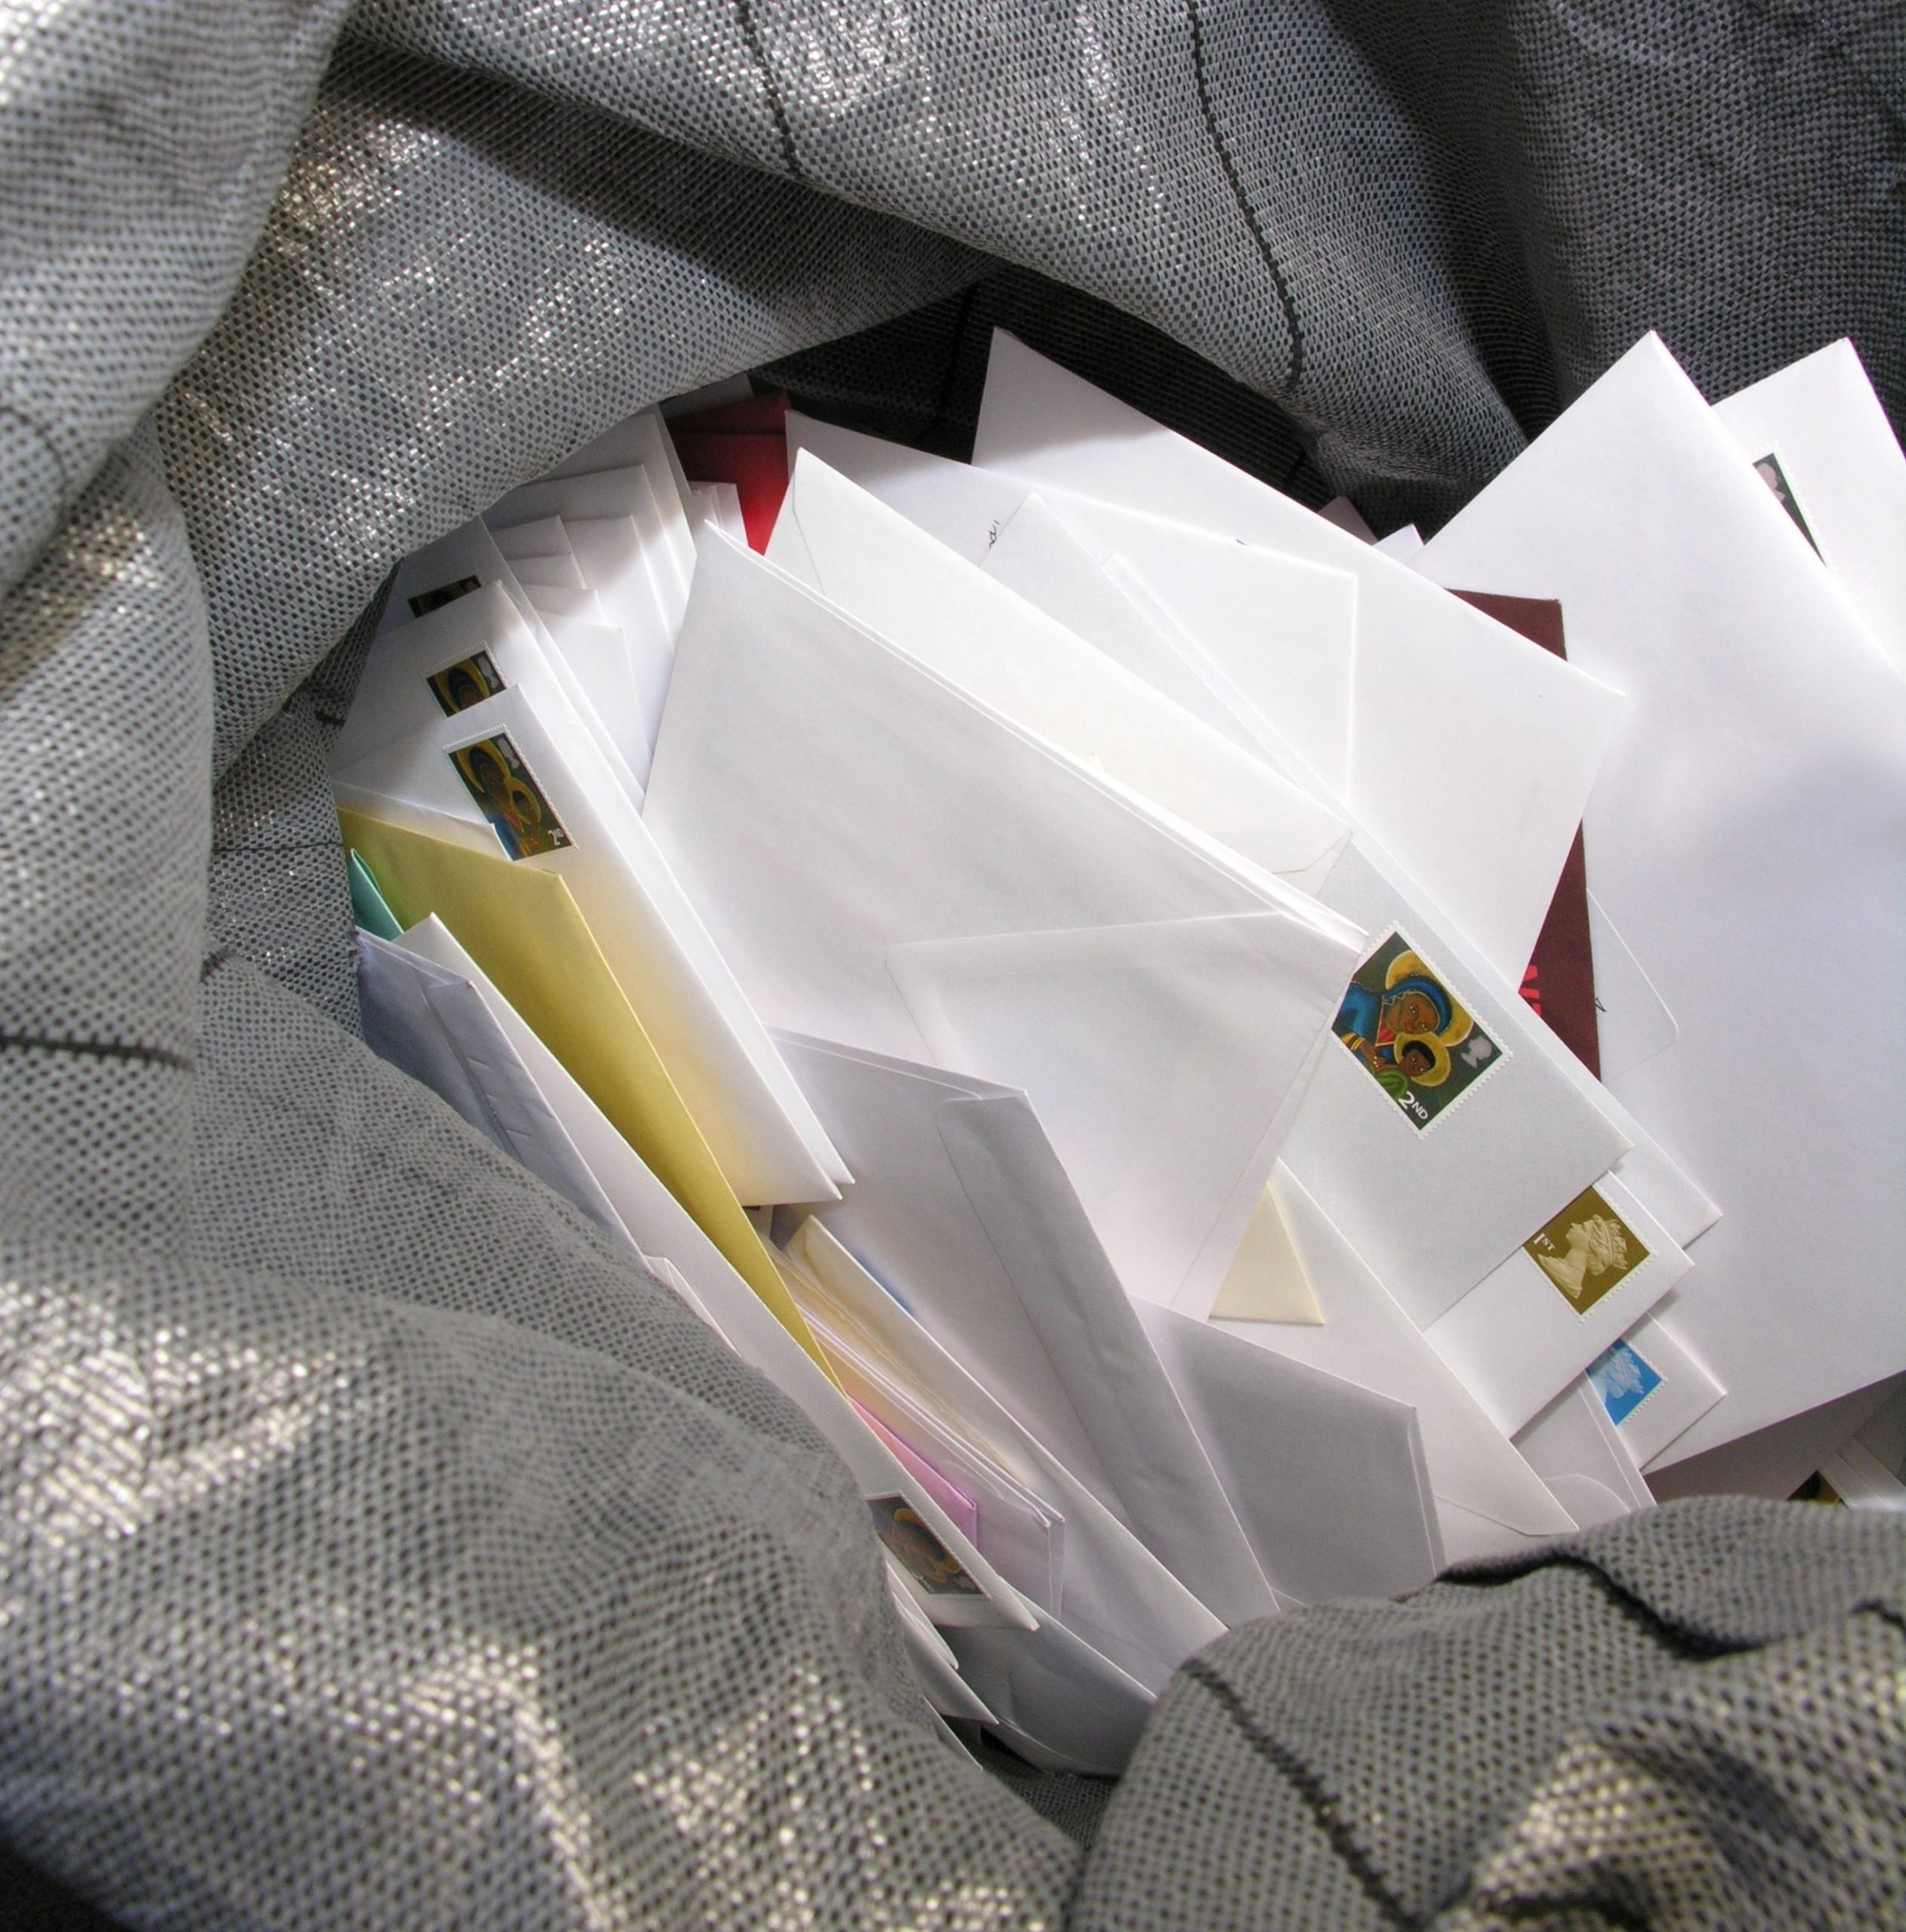 stack of mail in bag